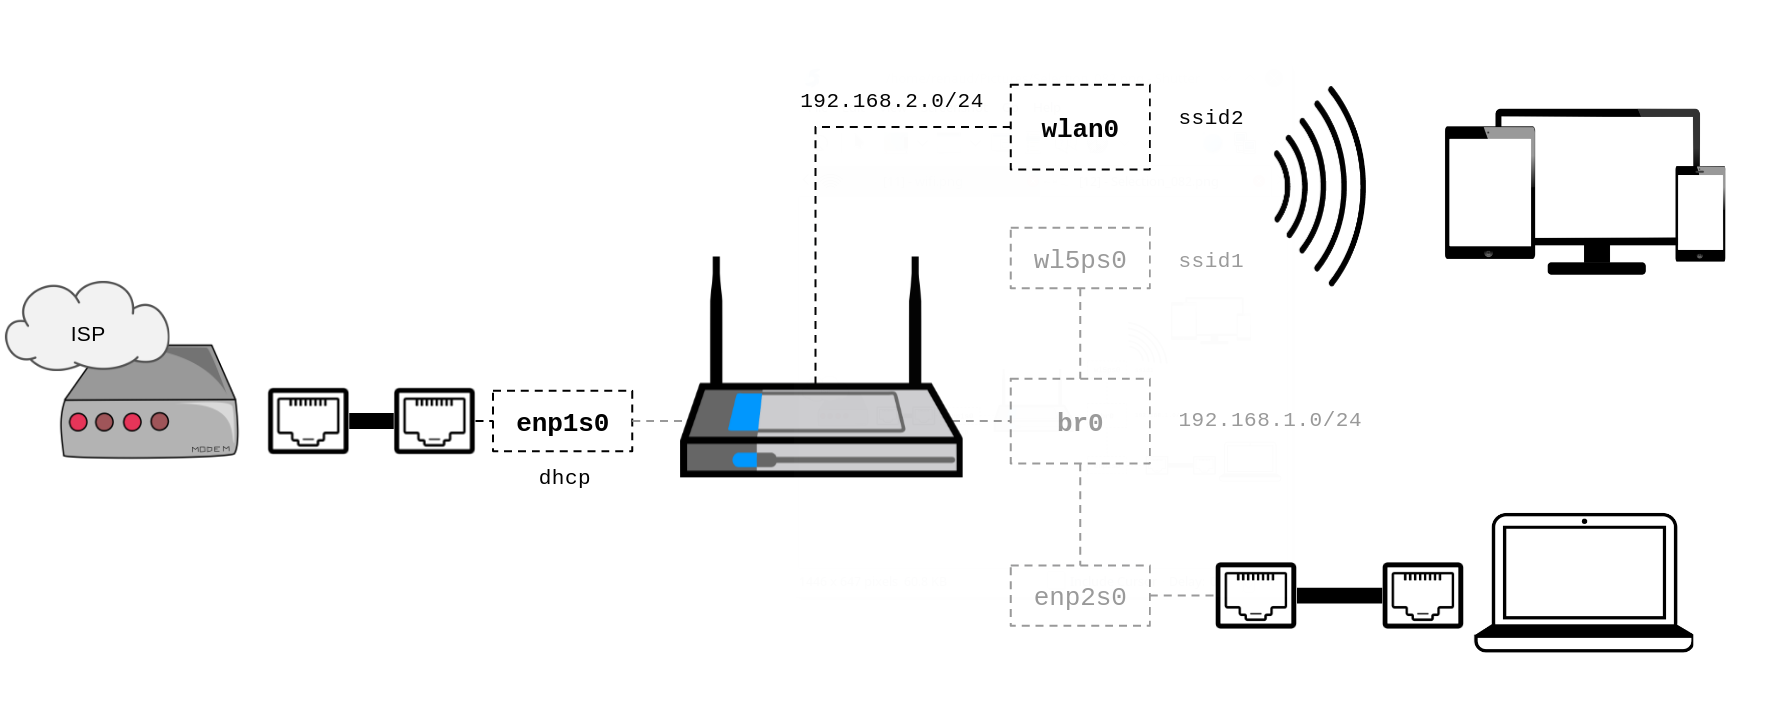 How to Setup a Virtual SSID with hostapd - Renaud Cerrato - Medium